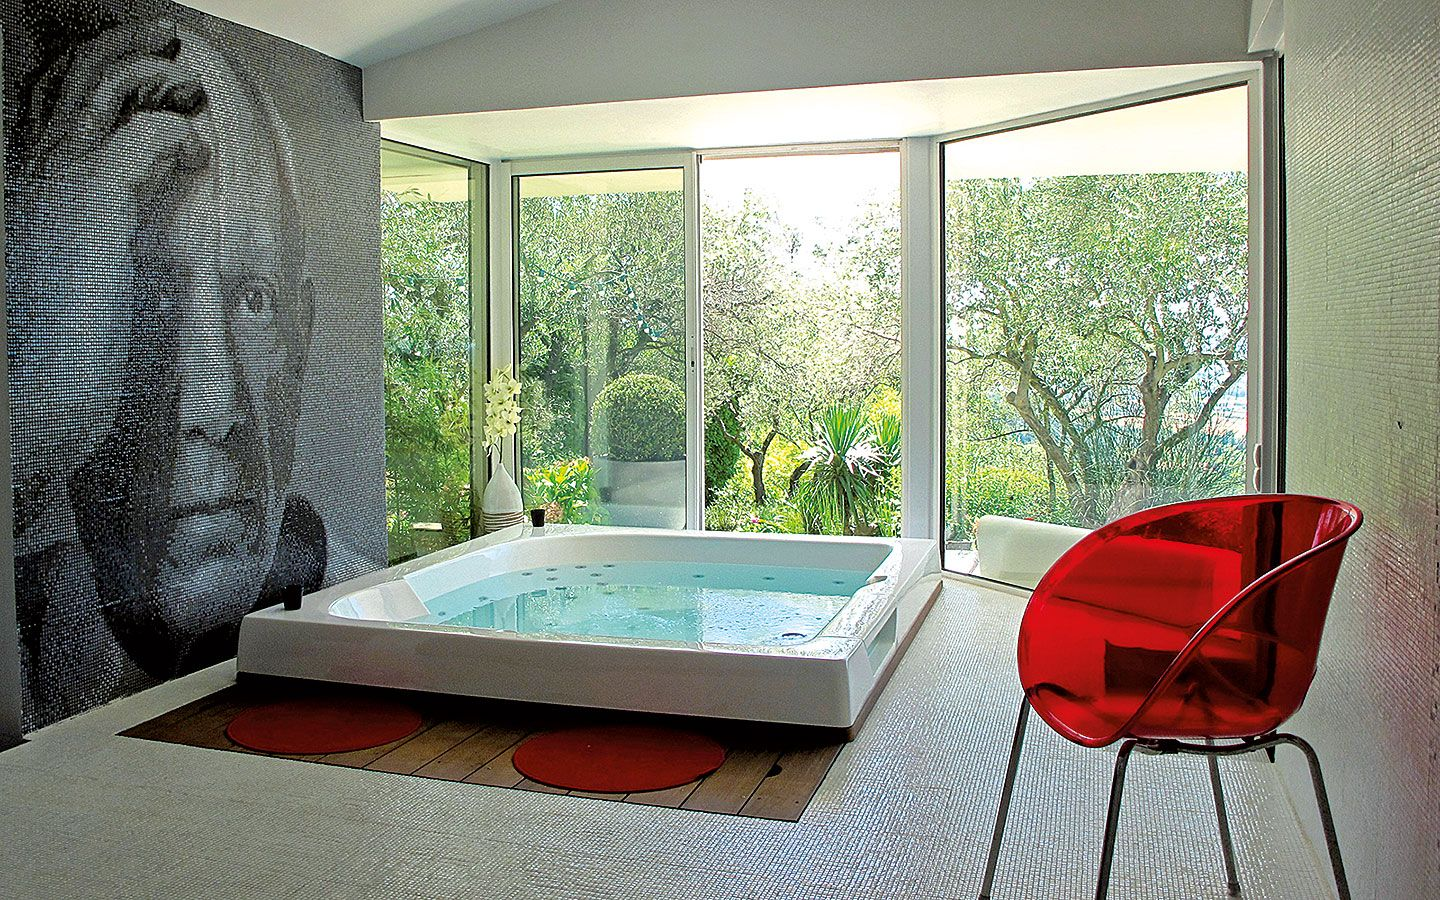 La Piscine Echo Architectural Spa Interieur Piscine Maison